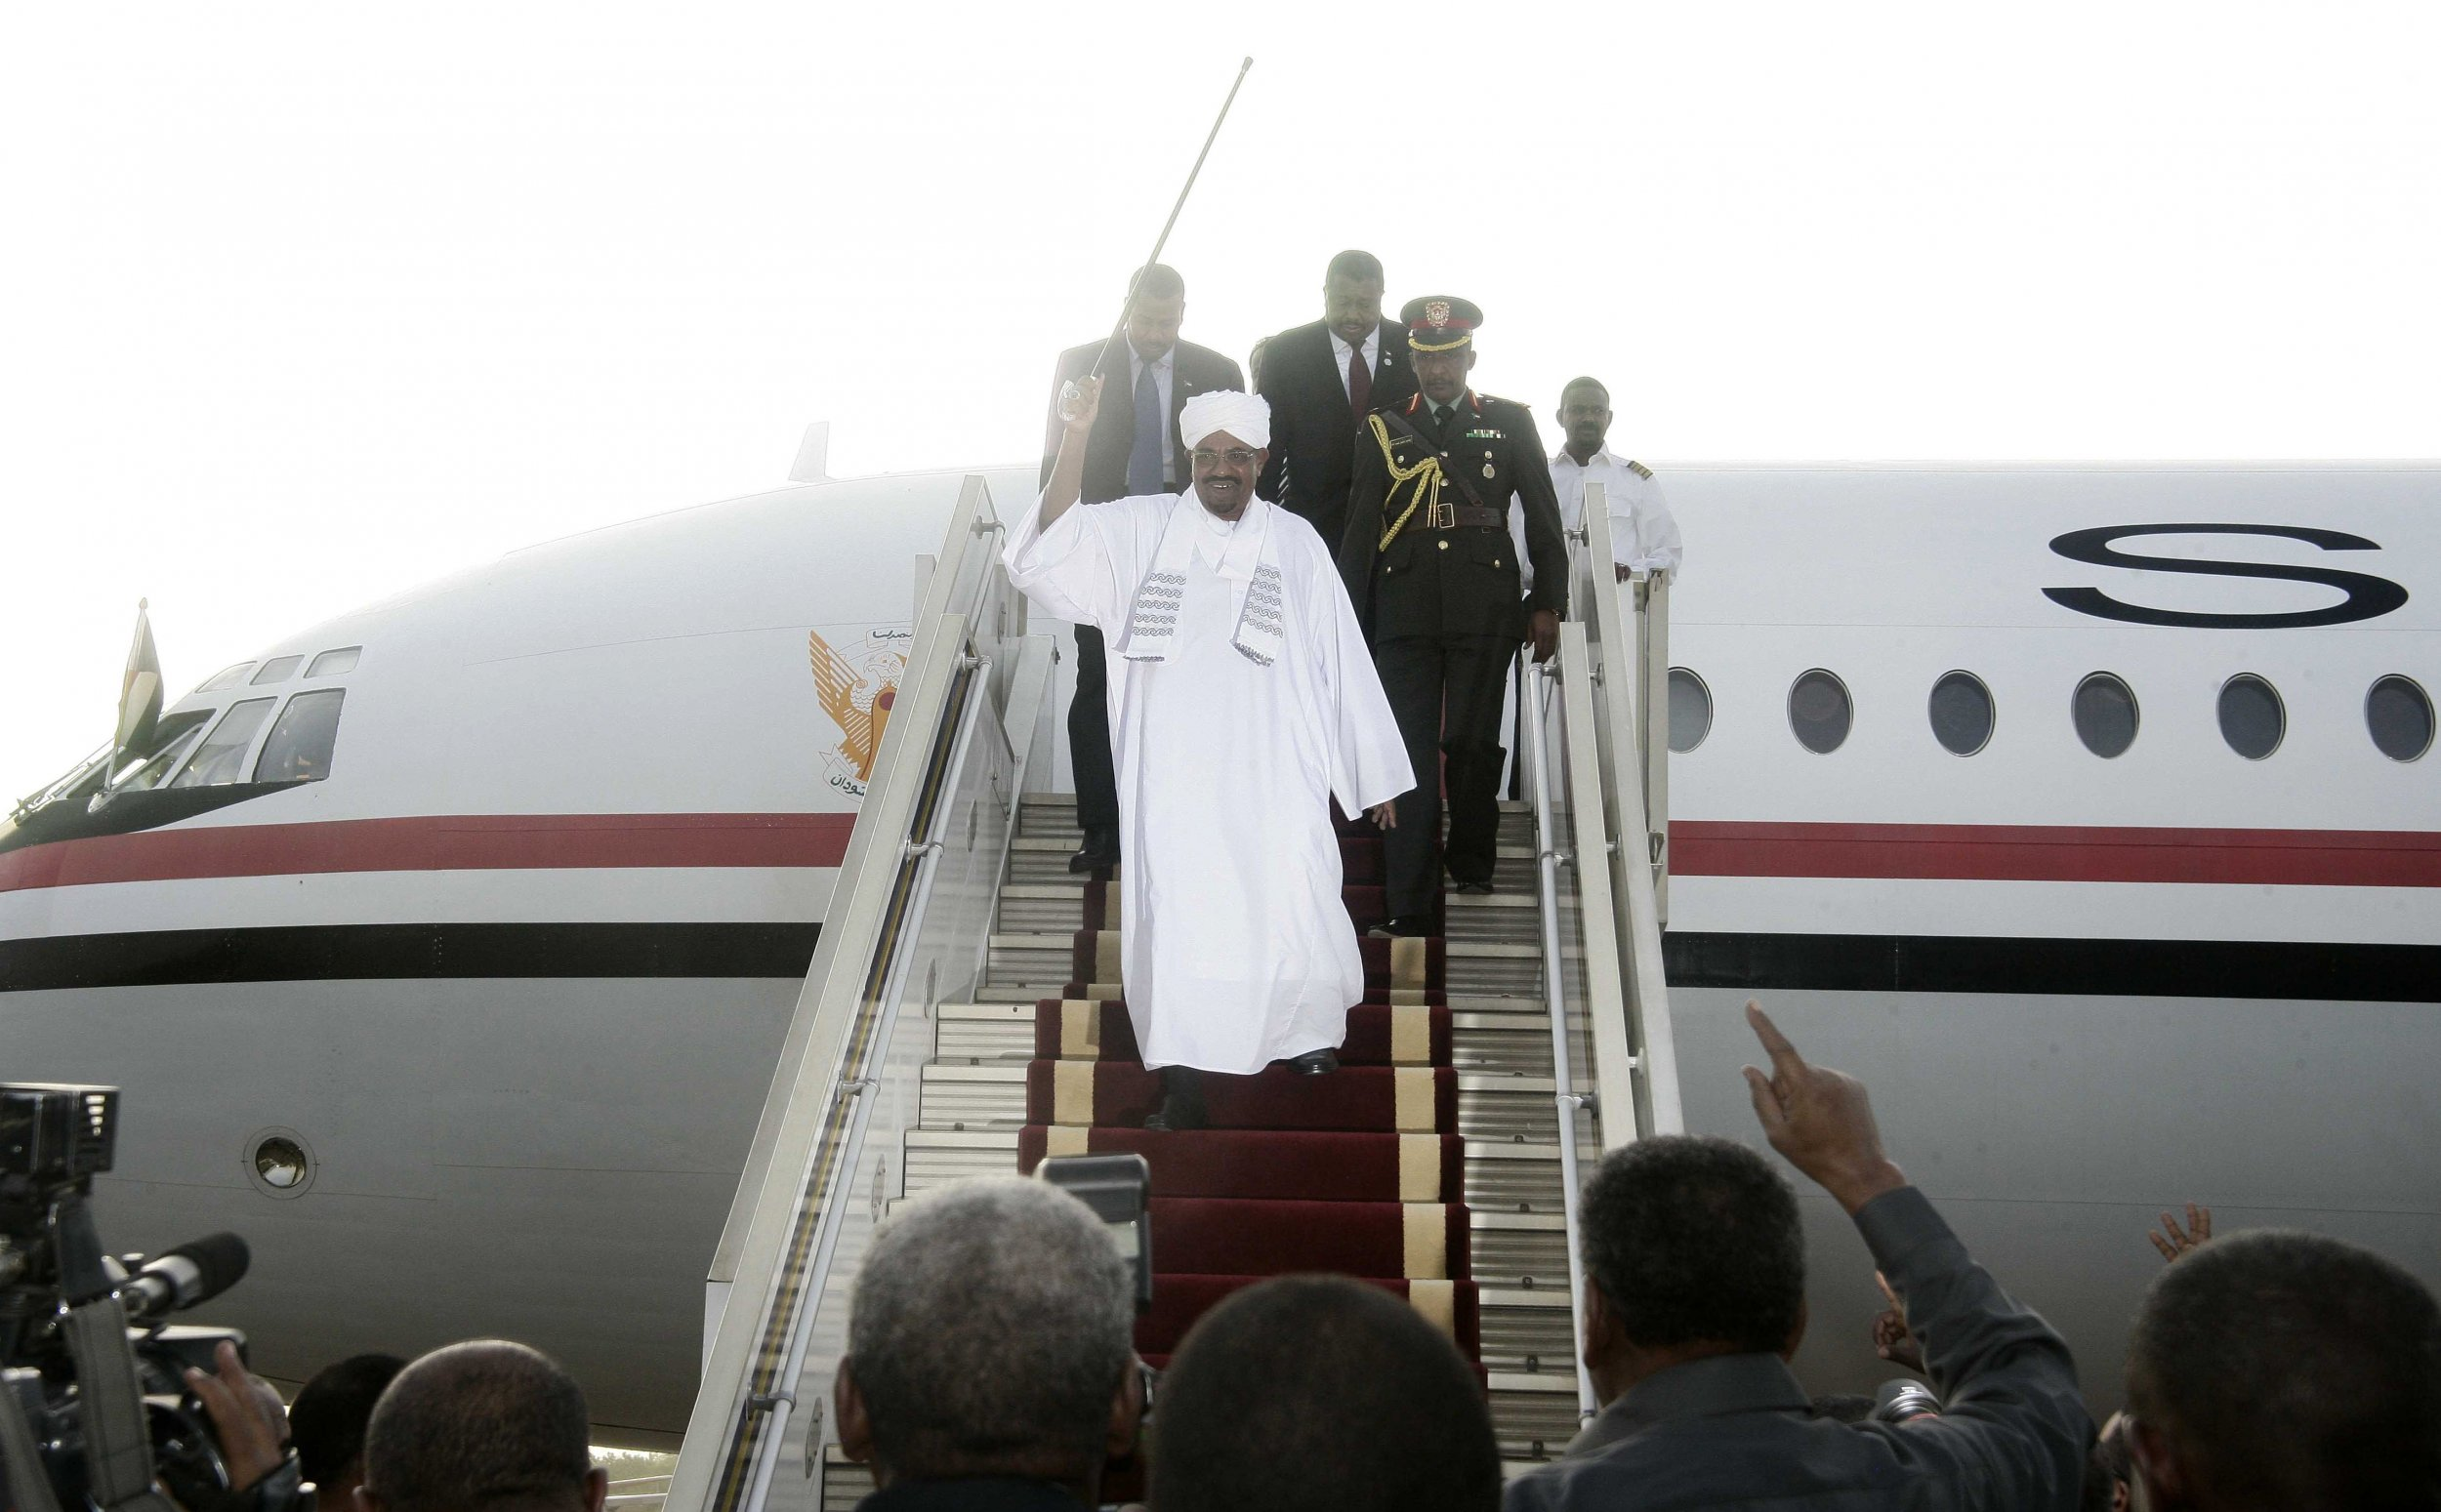 Sudanese President Omar al-Bashir waves upon returning to Khartoum from Johannesburg.